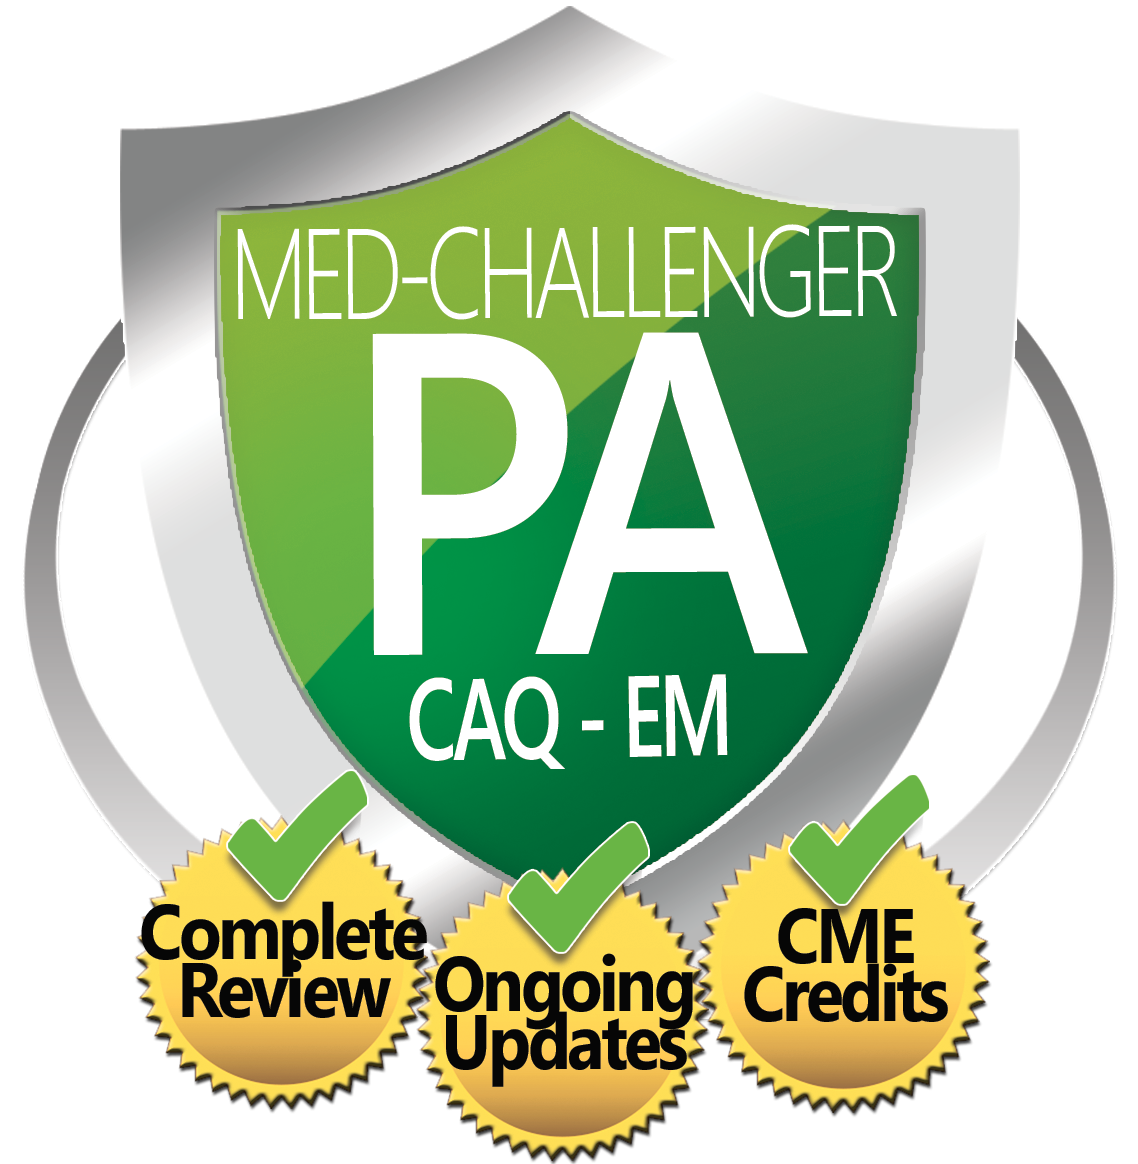 Physician Assistant CAQ EM Board Review, Med-Challenger EM, Complete Review, Ongoing Updates, CME Credits